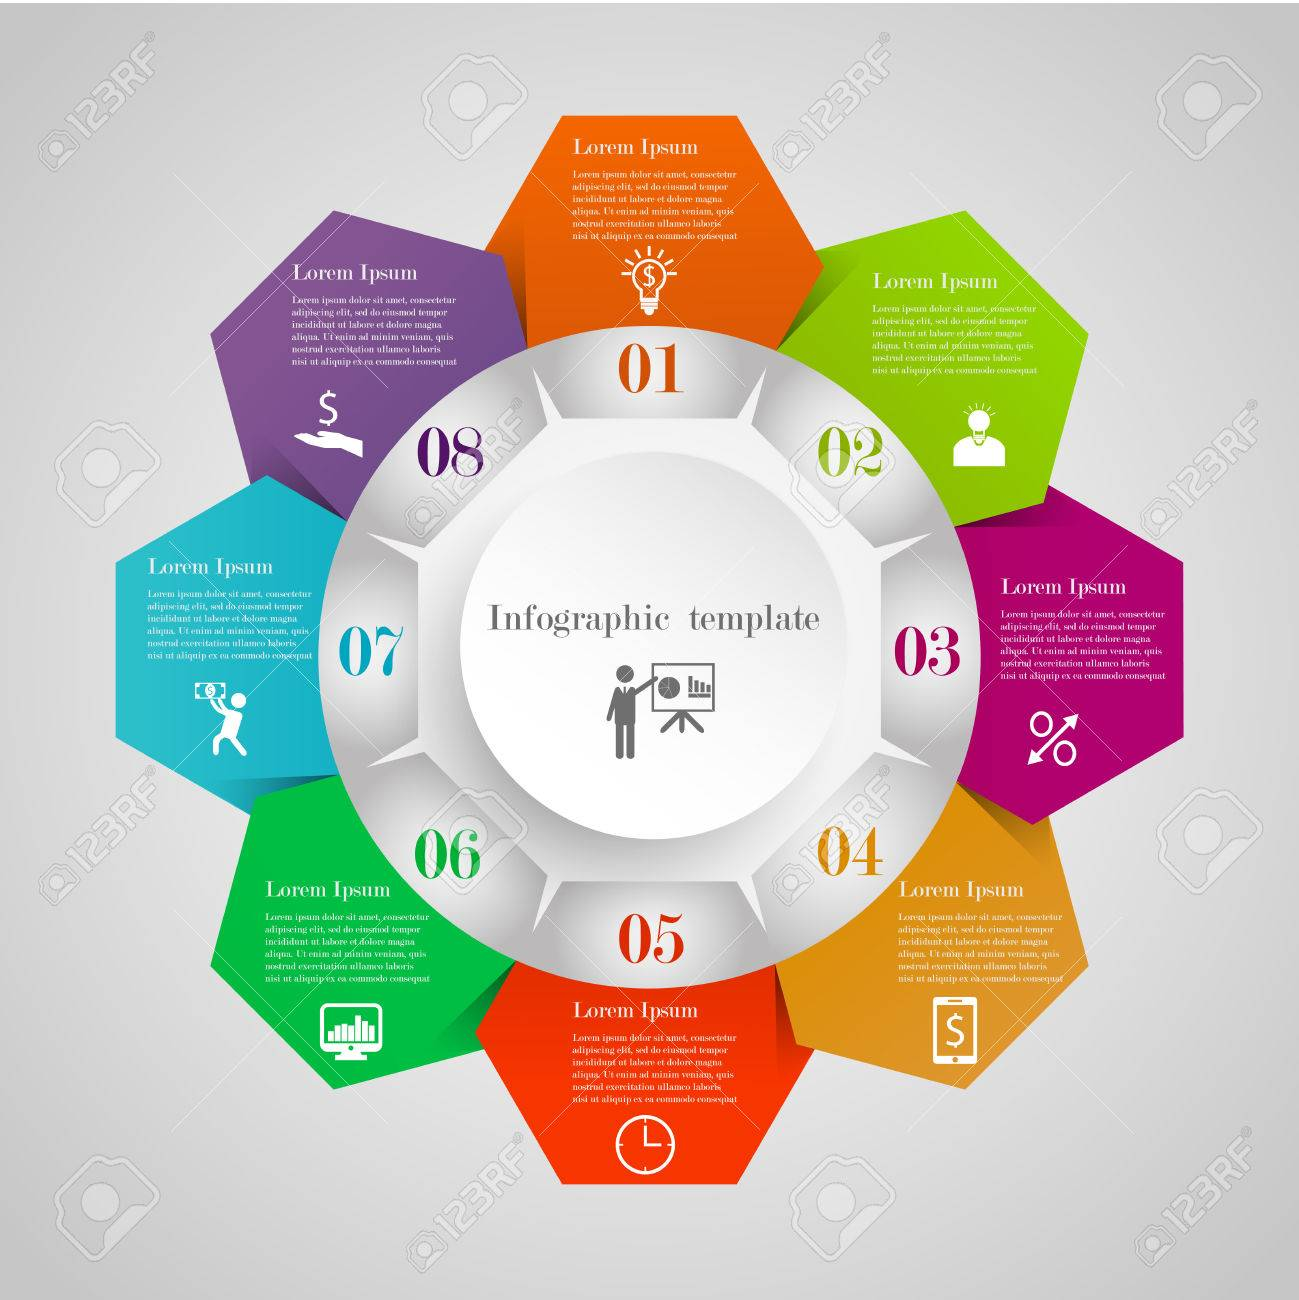 Infographic circle hexagon flowchart template with 8 options infographic circle hexagon flowchart template with 8 options icons and text can be used ccuart Gallery